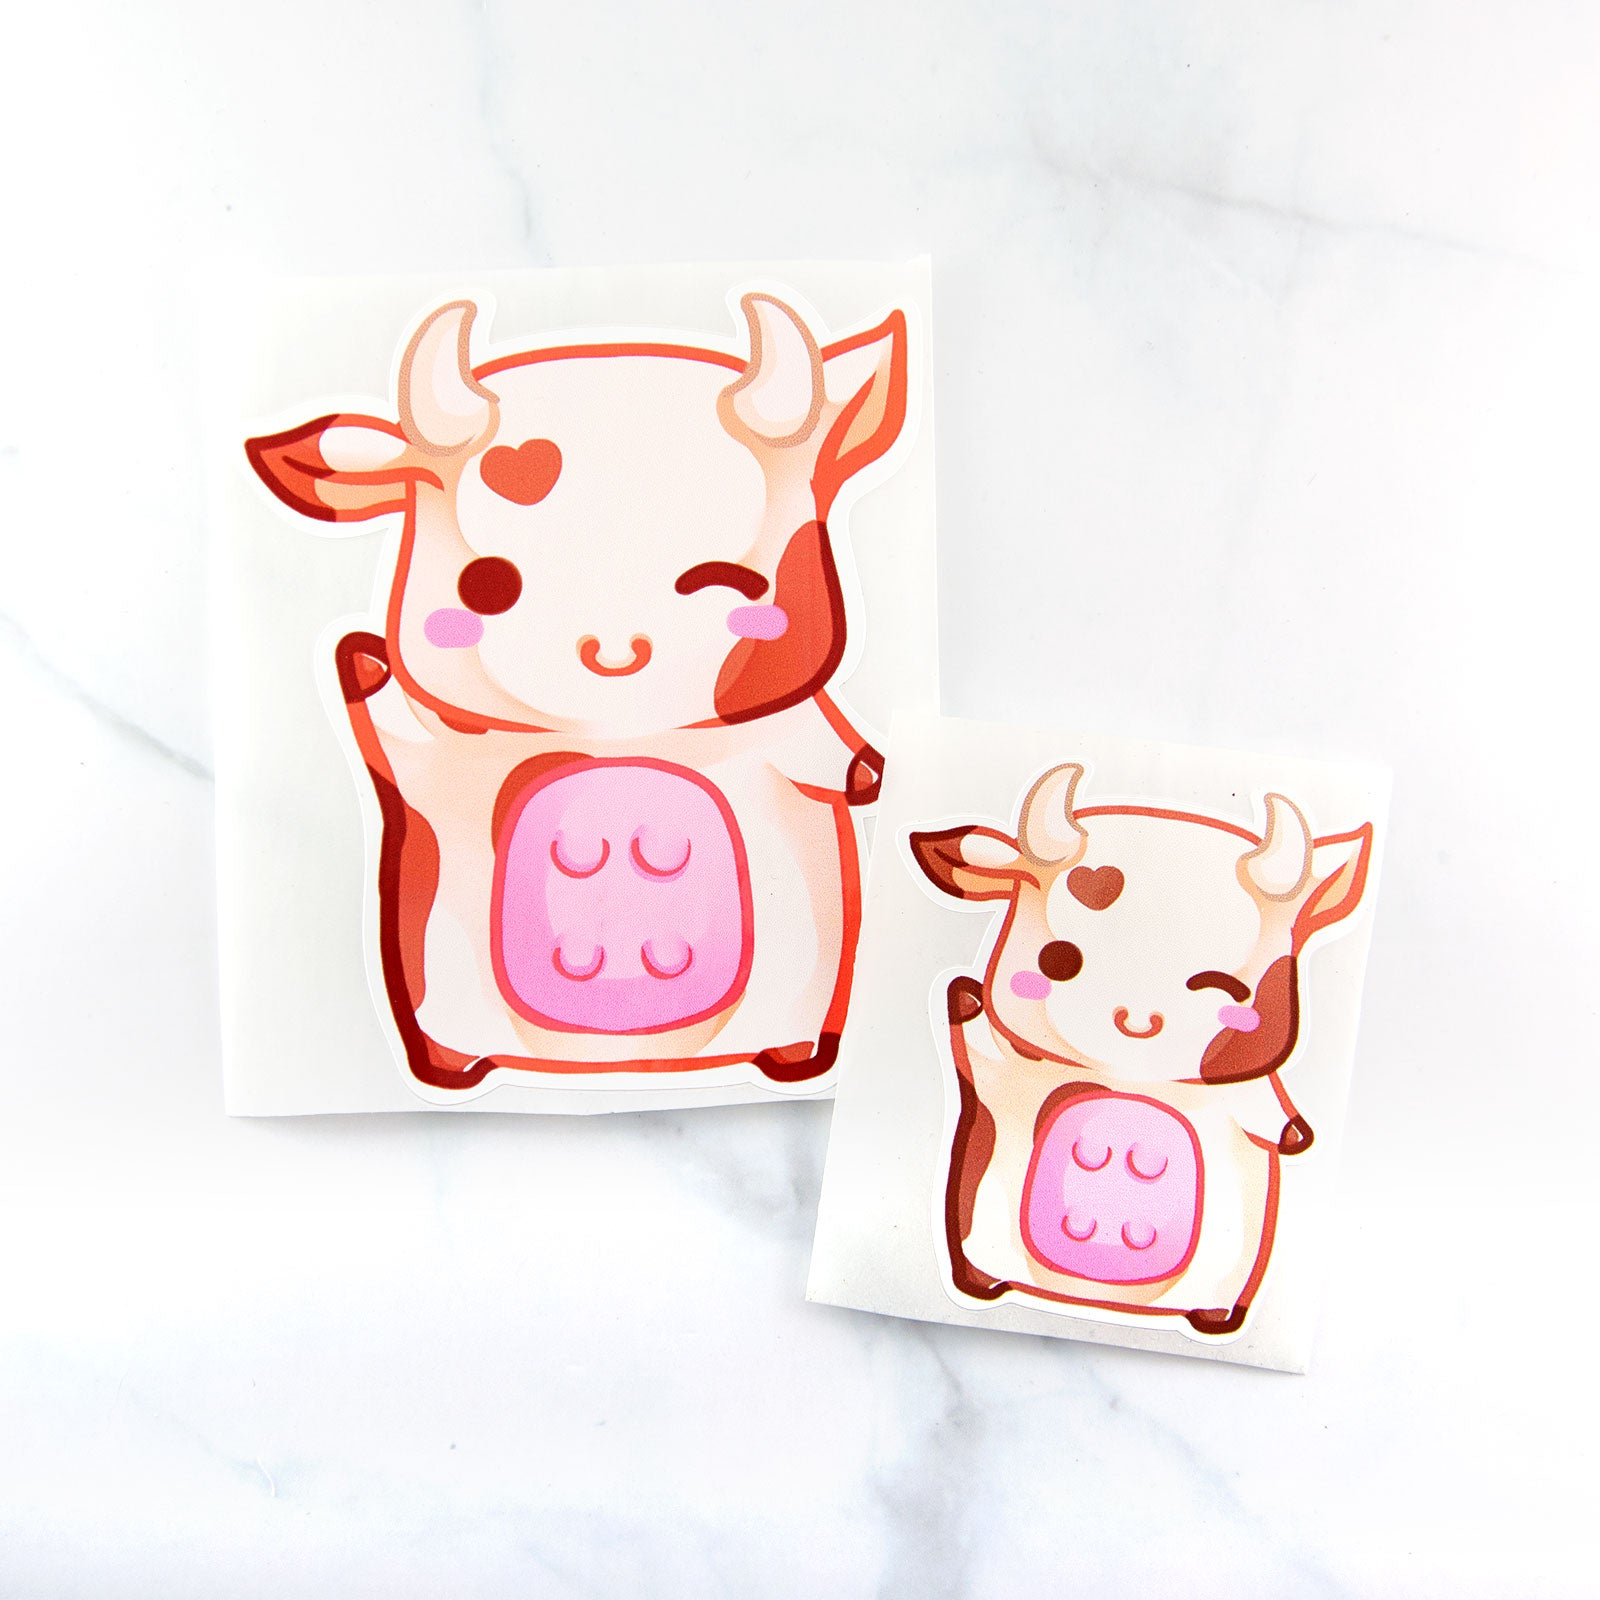 Cute planner stationery cow sticker - MadModesty